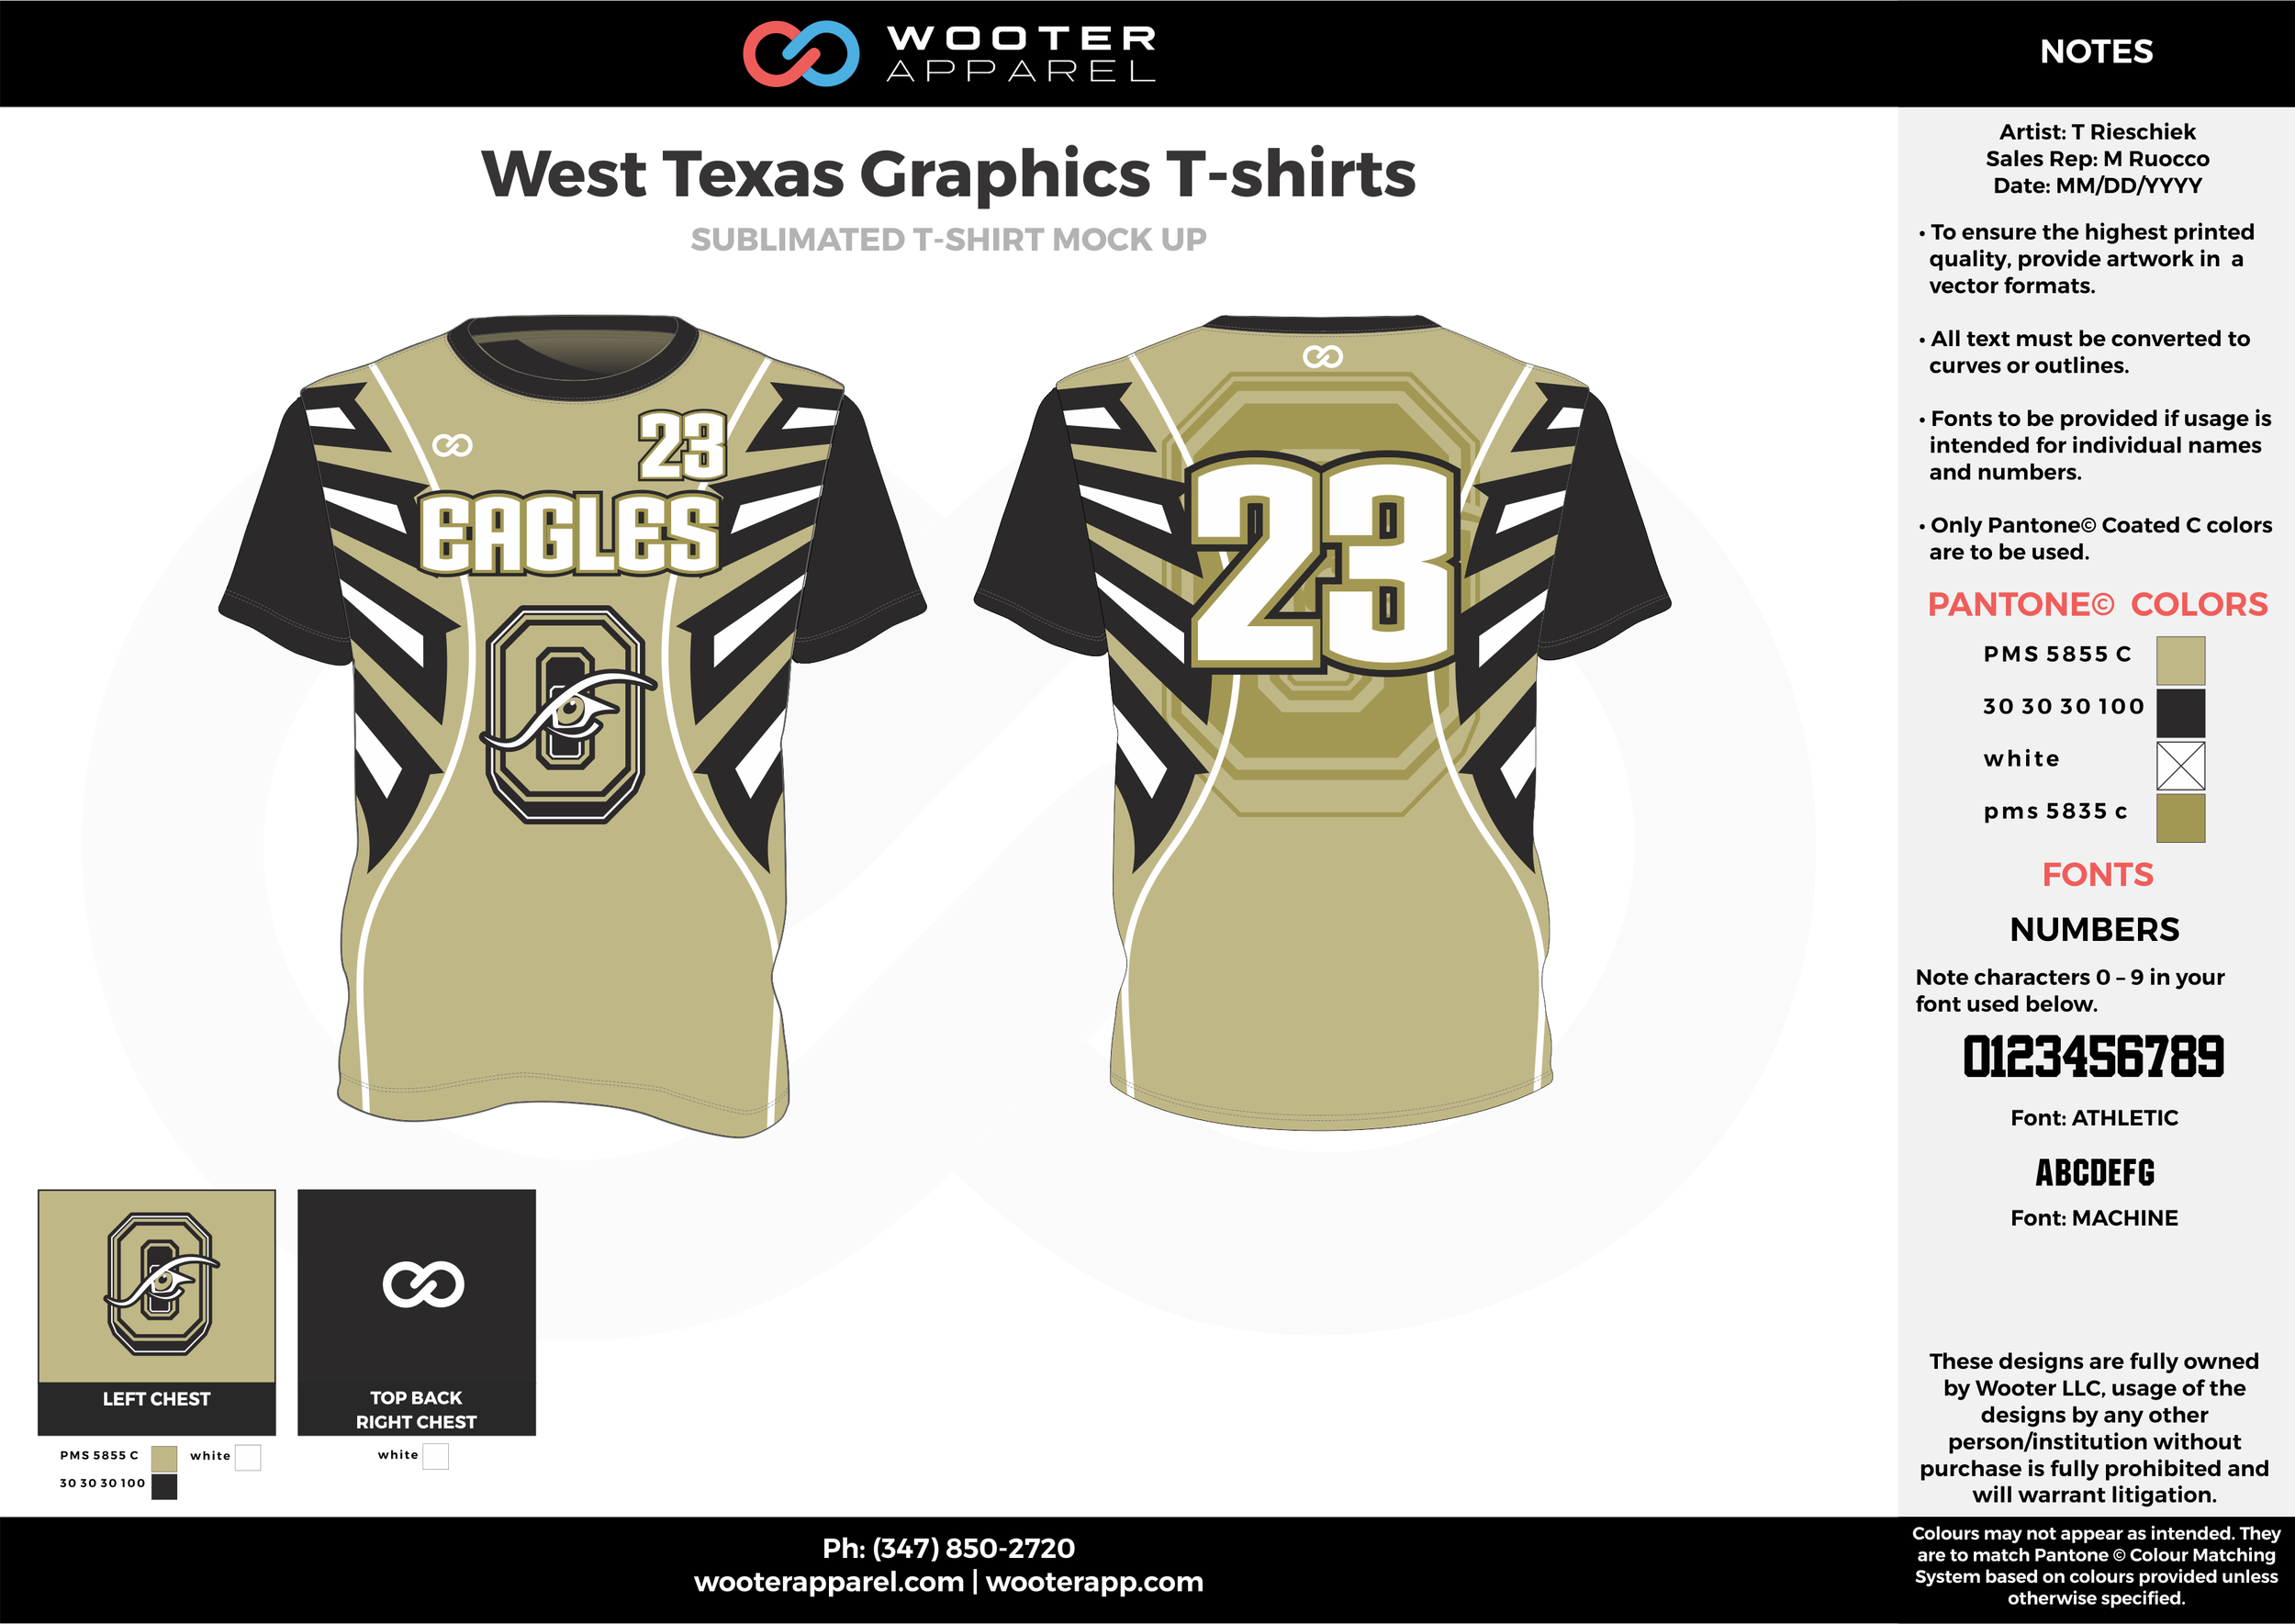 West Texas Graphics T-shirts beige black white custom design t-shirts